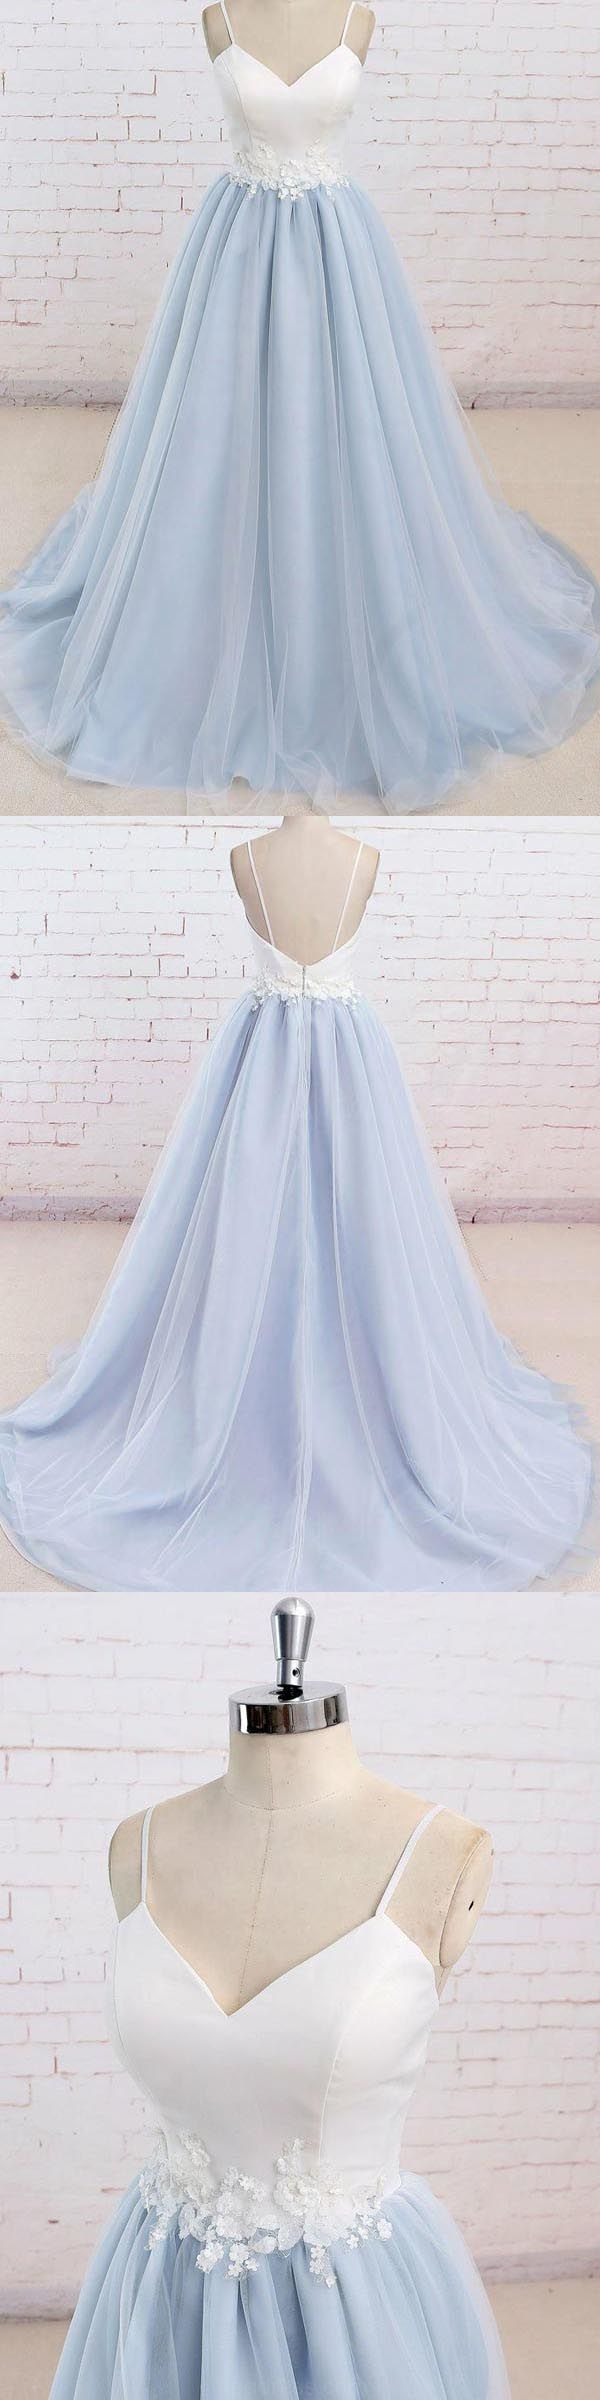 Substantial ball gown prom dresses spaghetti straps sweep train